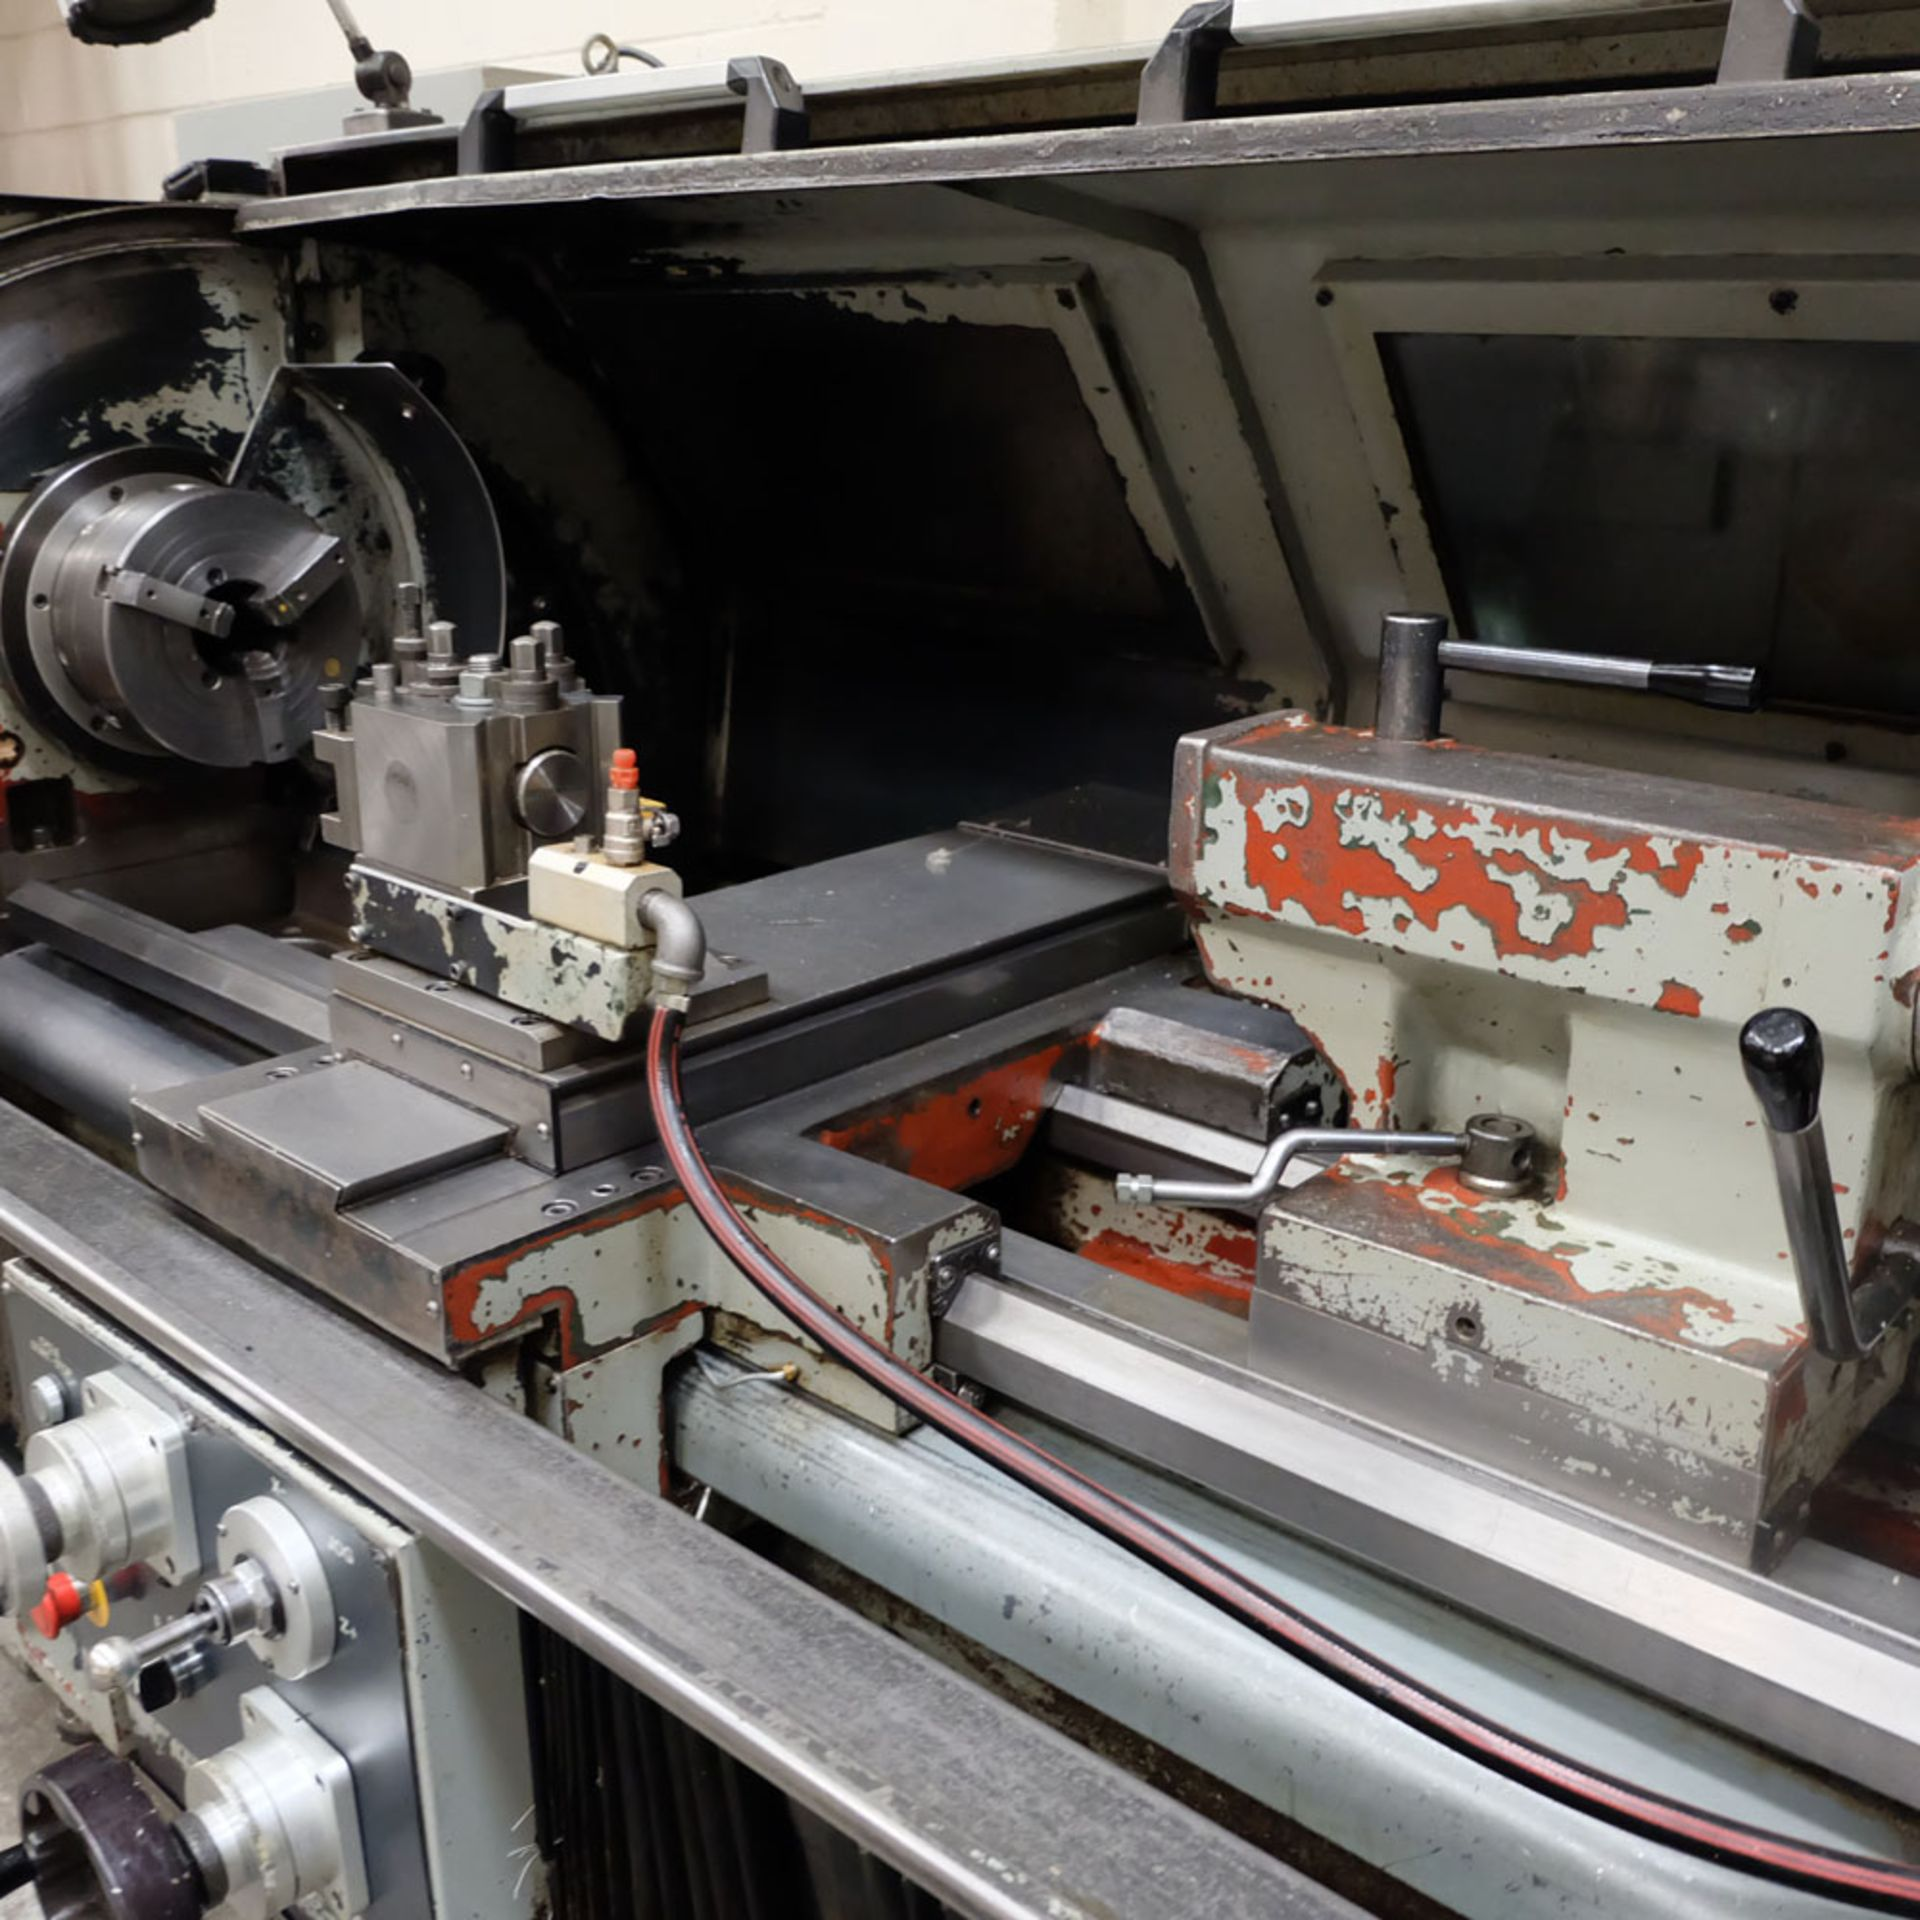 XYZ Proturn 420 Model L480 CNC Lathe with ProtoTrak LX3 Control.Swing Over Bed: 480mm. - Image 3 of 6